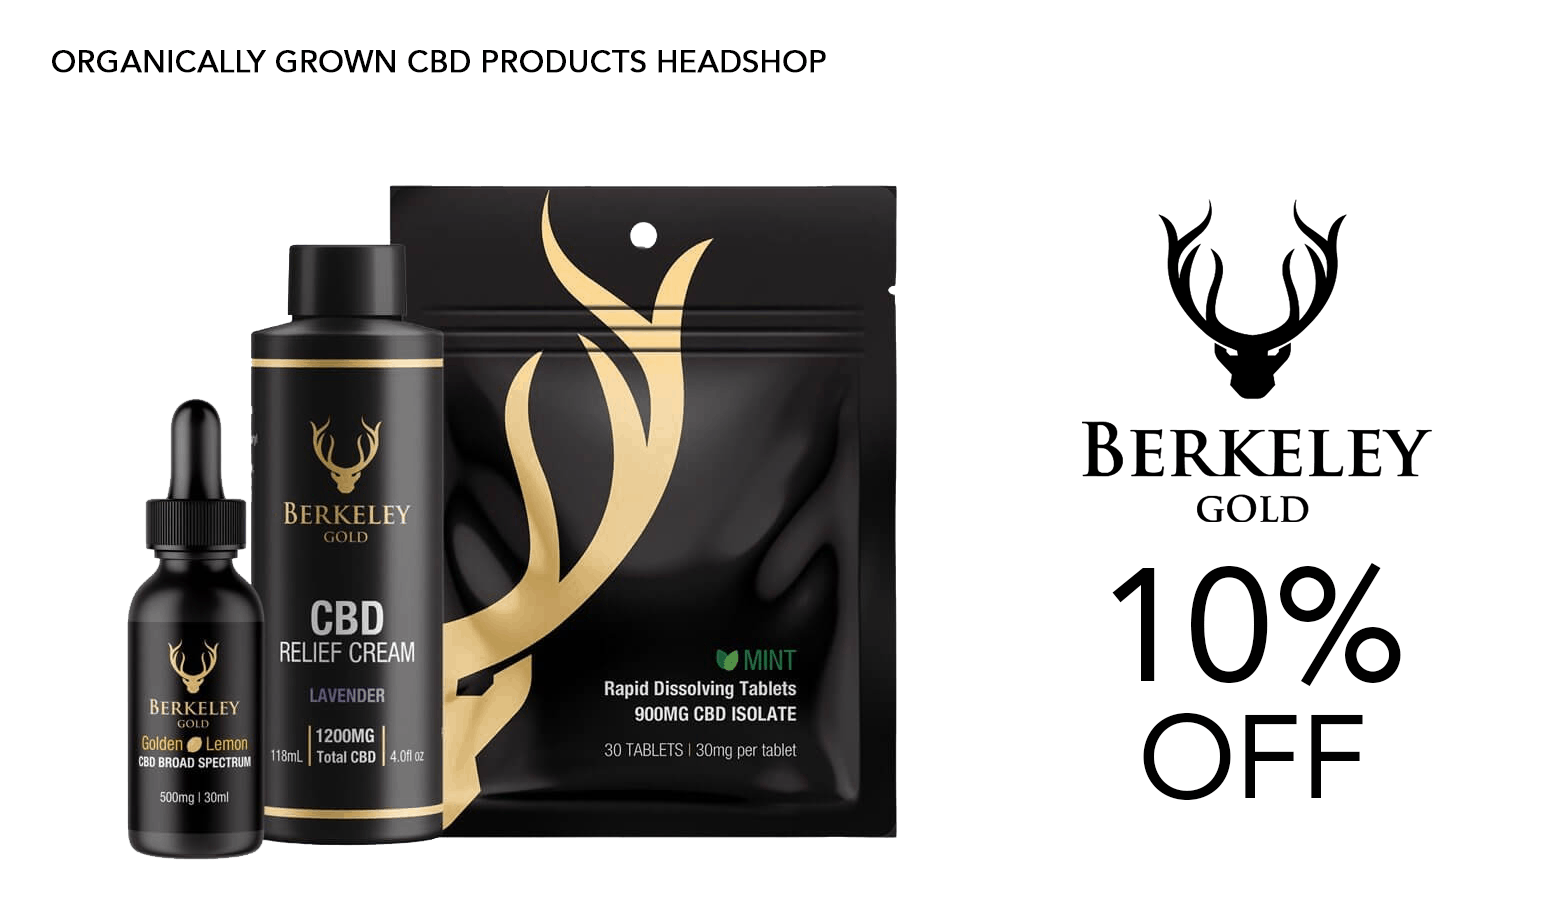 Berkeley Gold CBD Coupon Code Offer Website